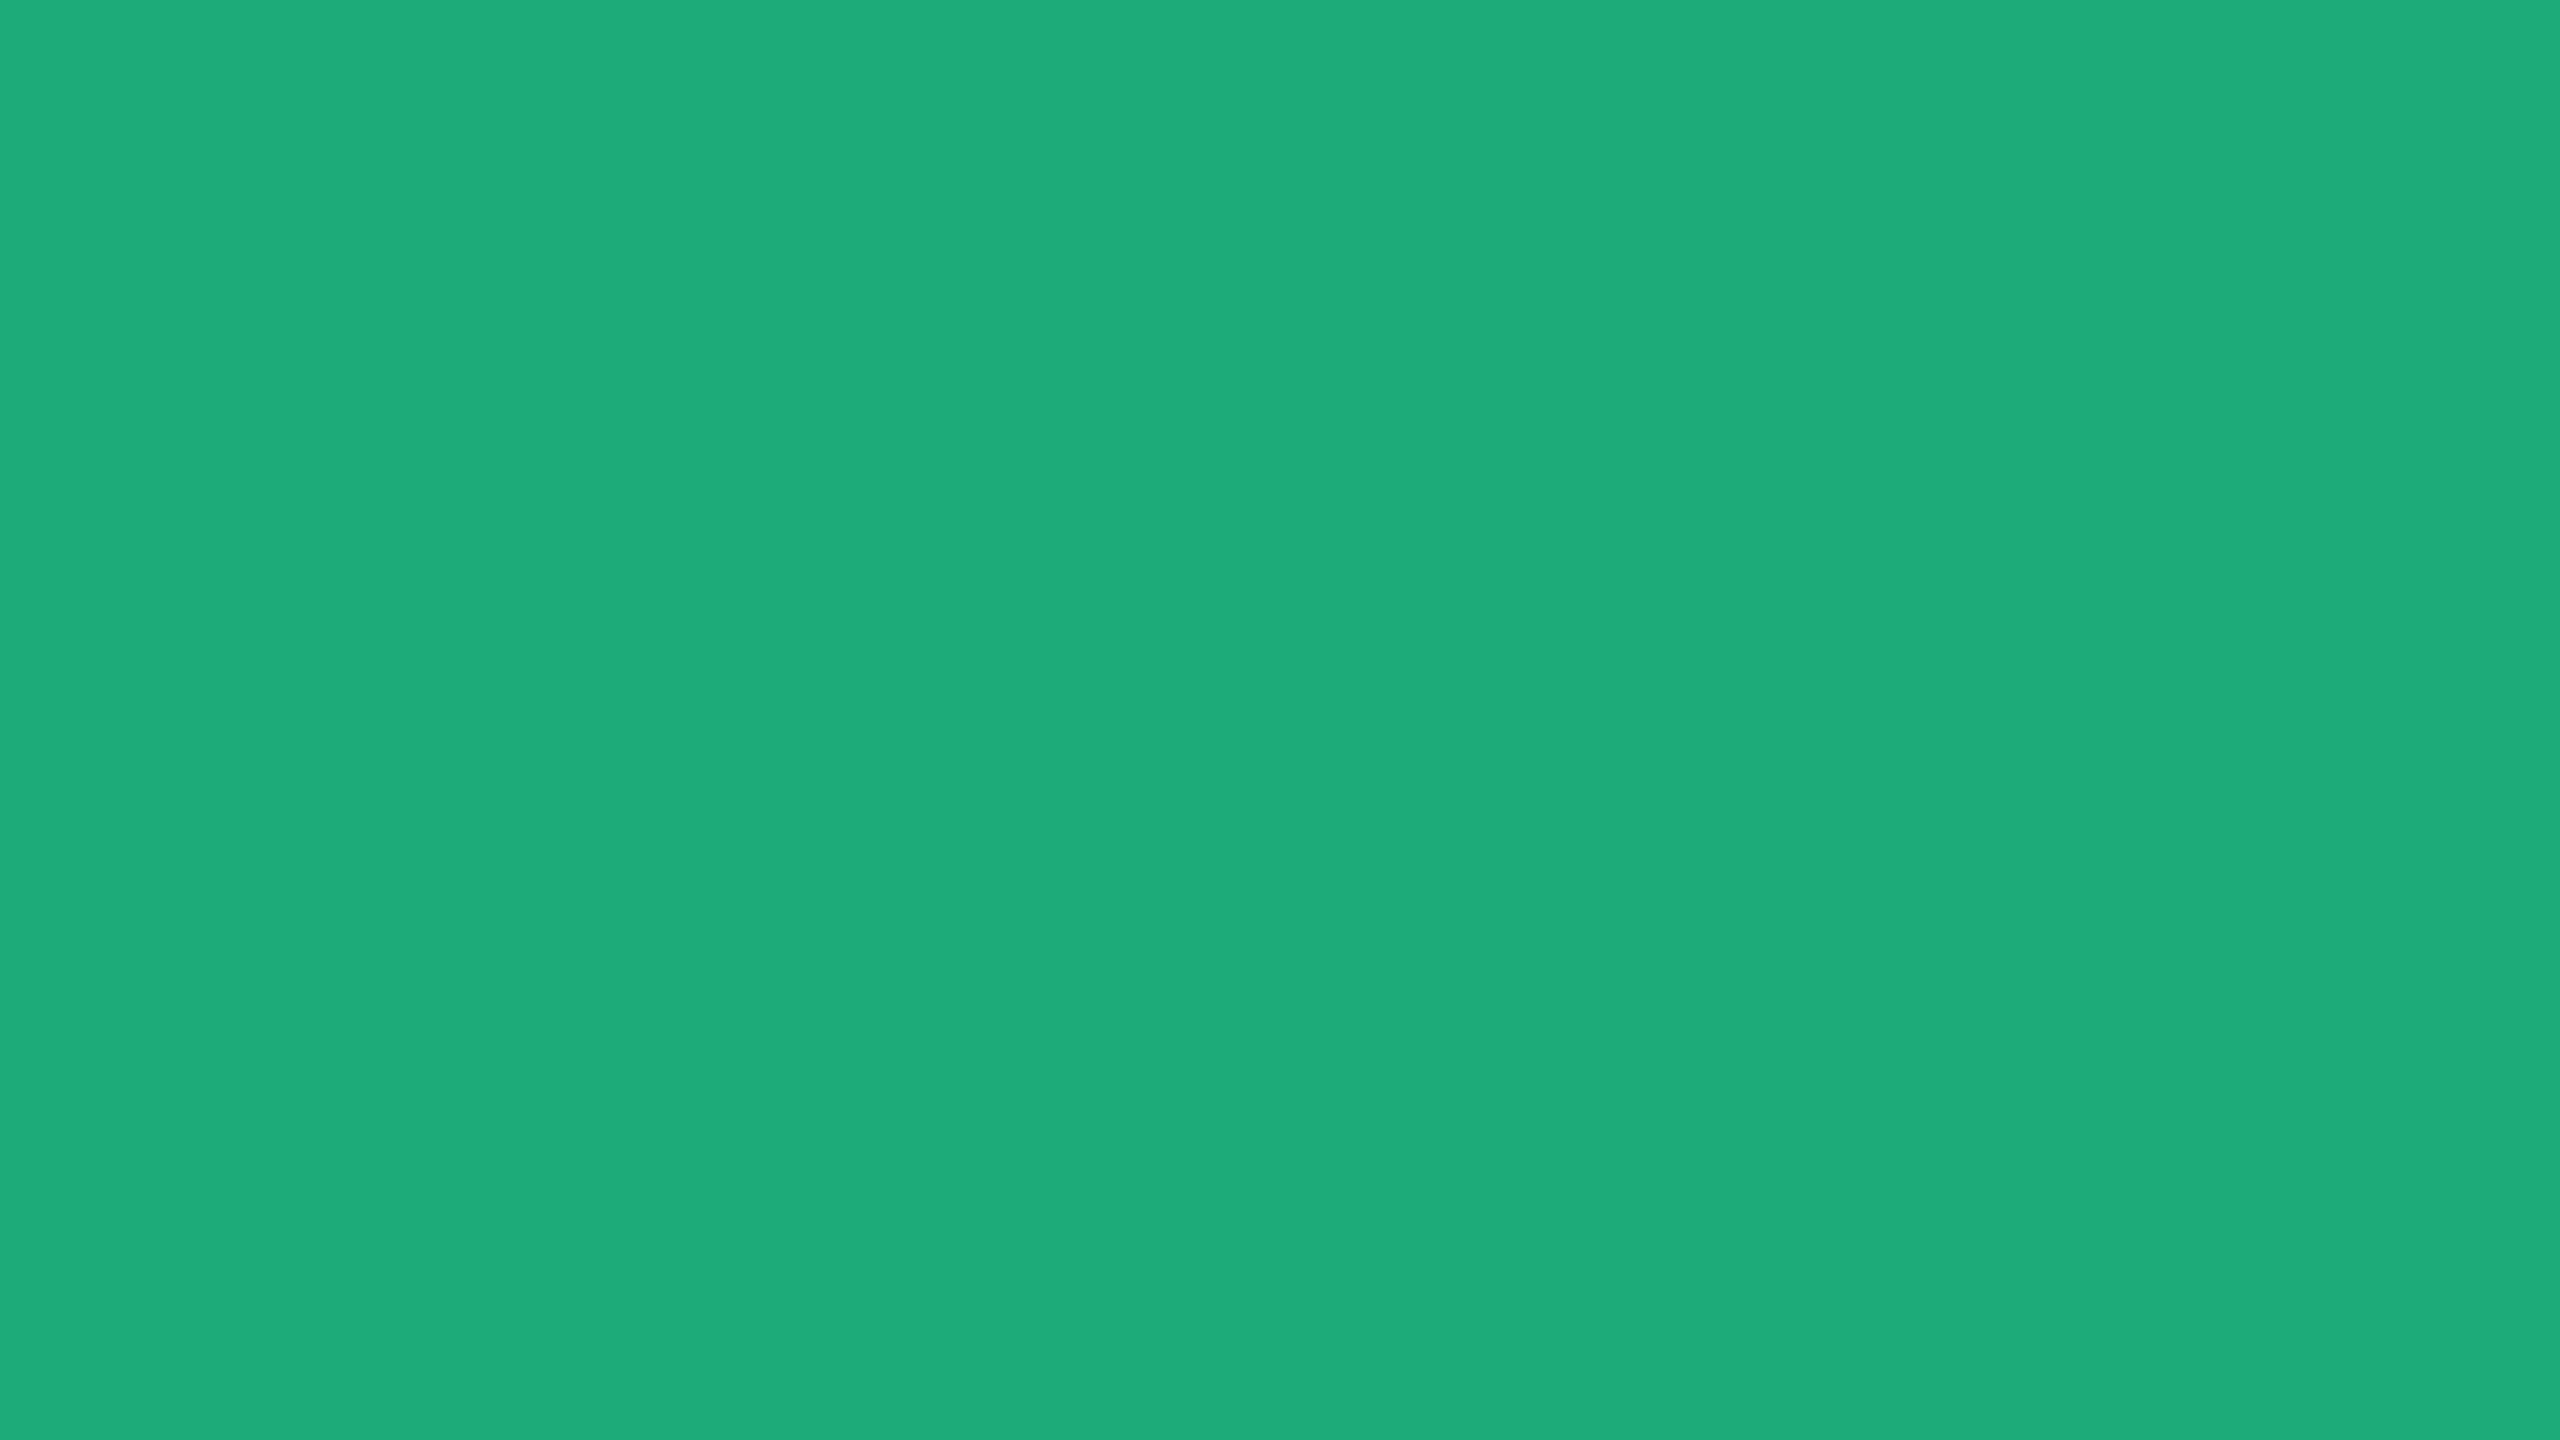 2560x1440 Green Crayola Solid Color Background